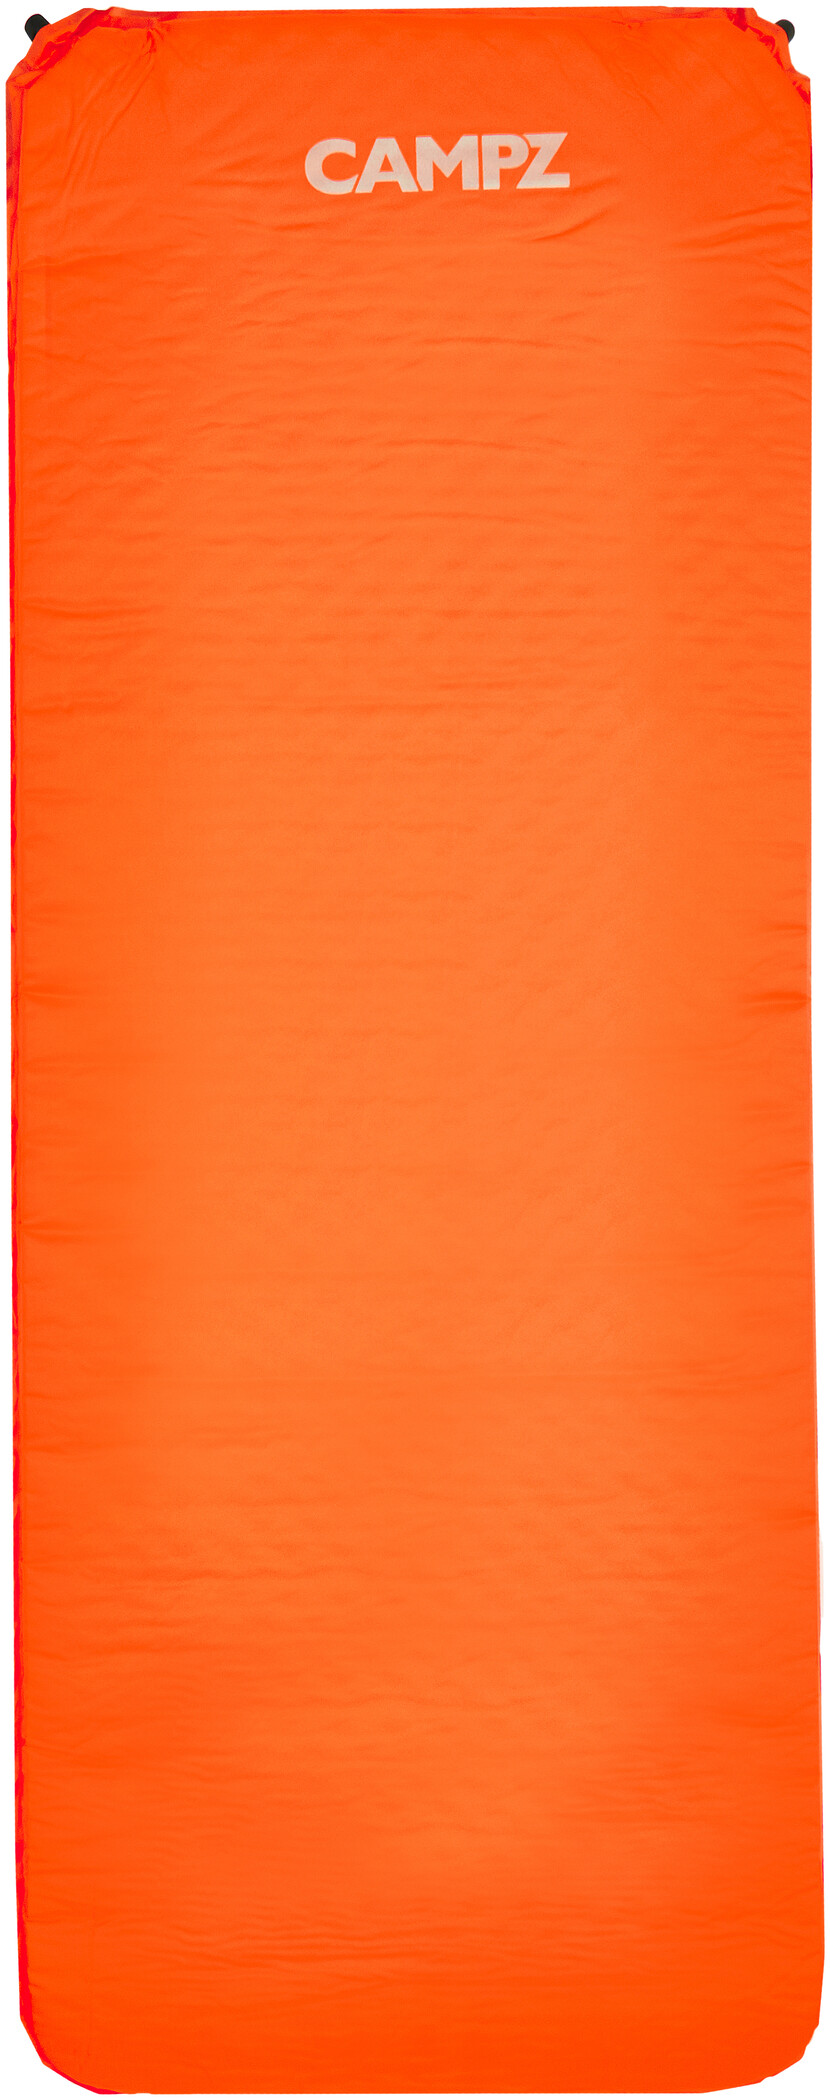 CAMPZ Deluxe Comfort Liggeunderlag XL, orange (2019) | Misc. Transportation and Storage